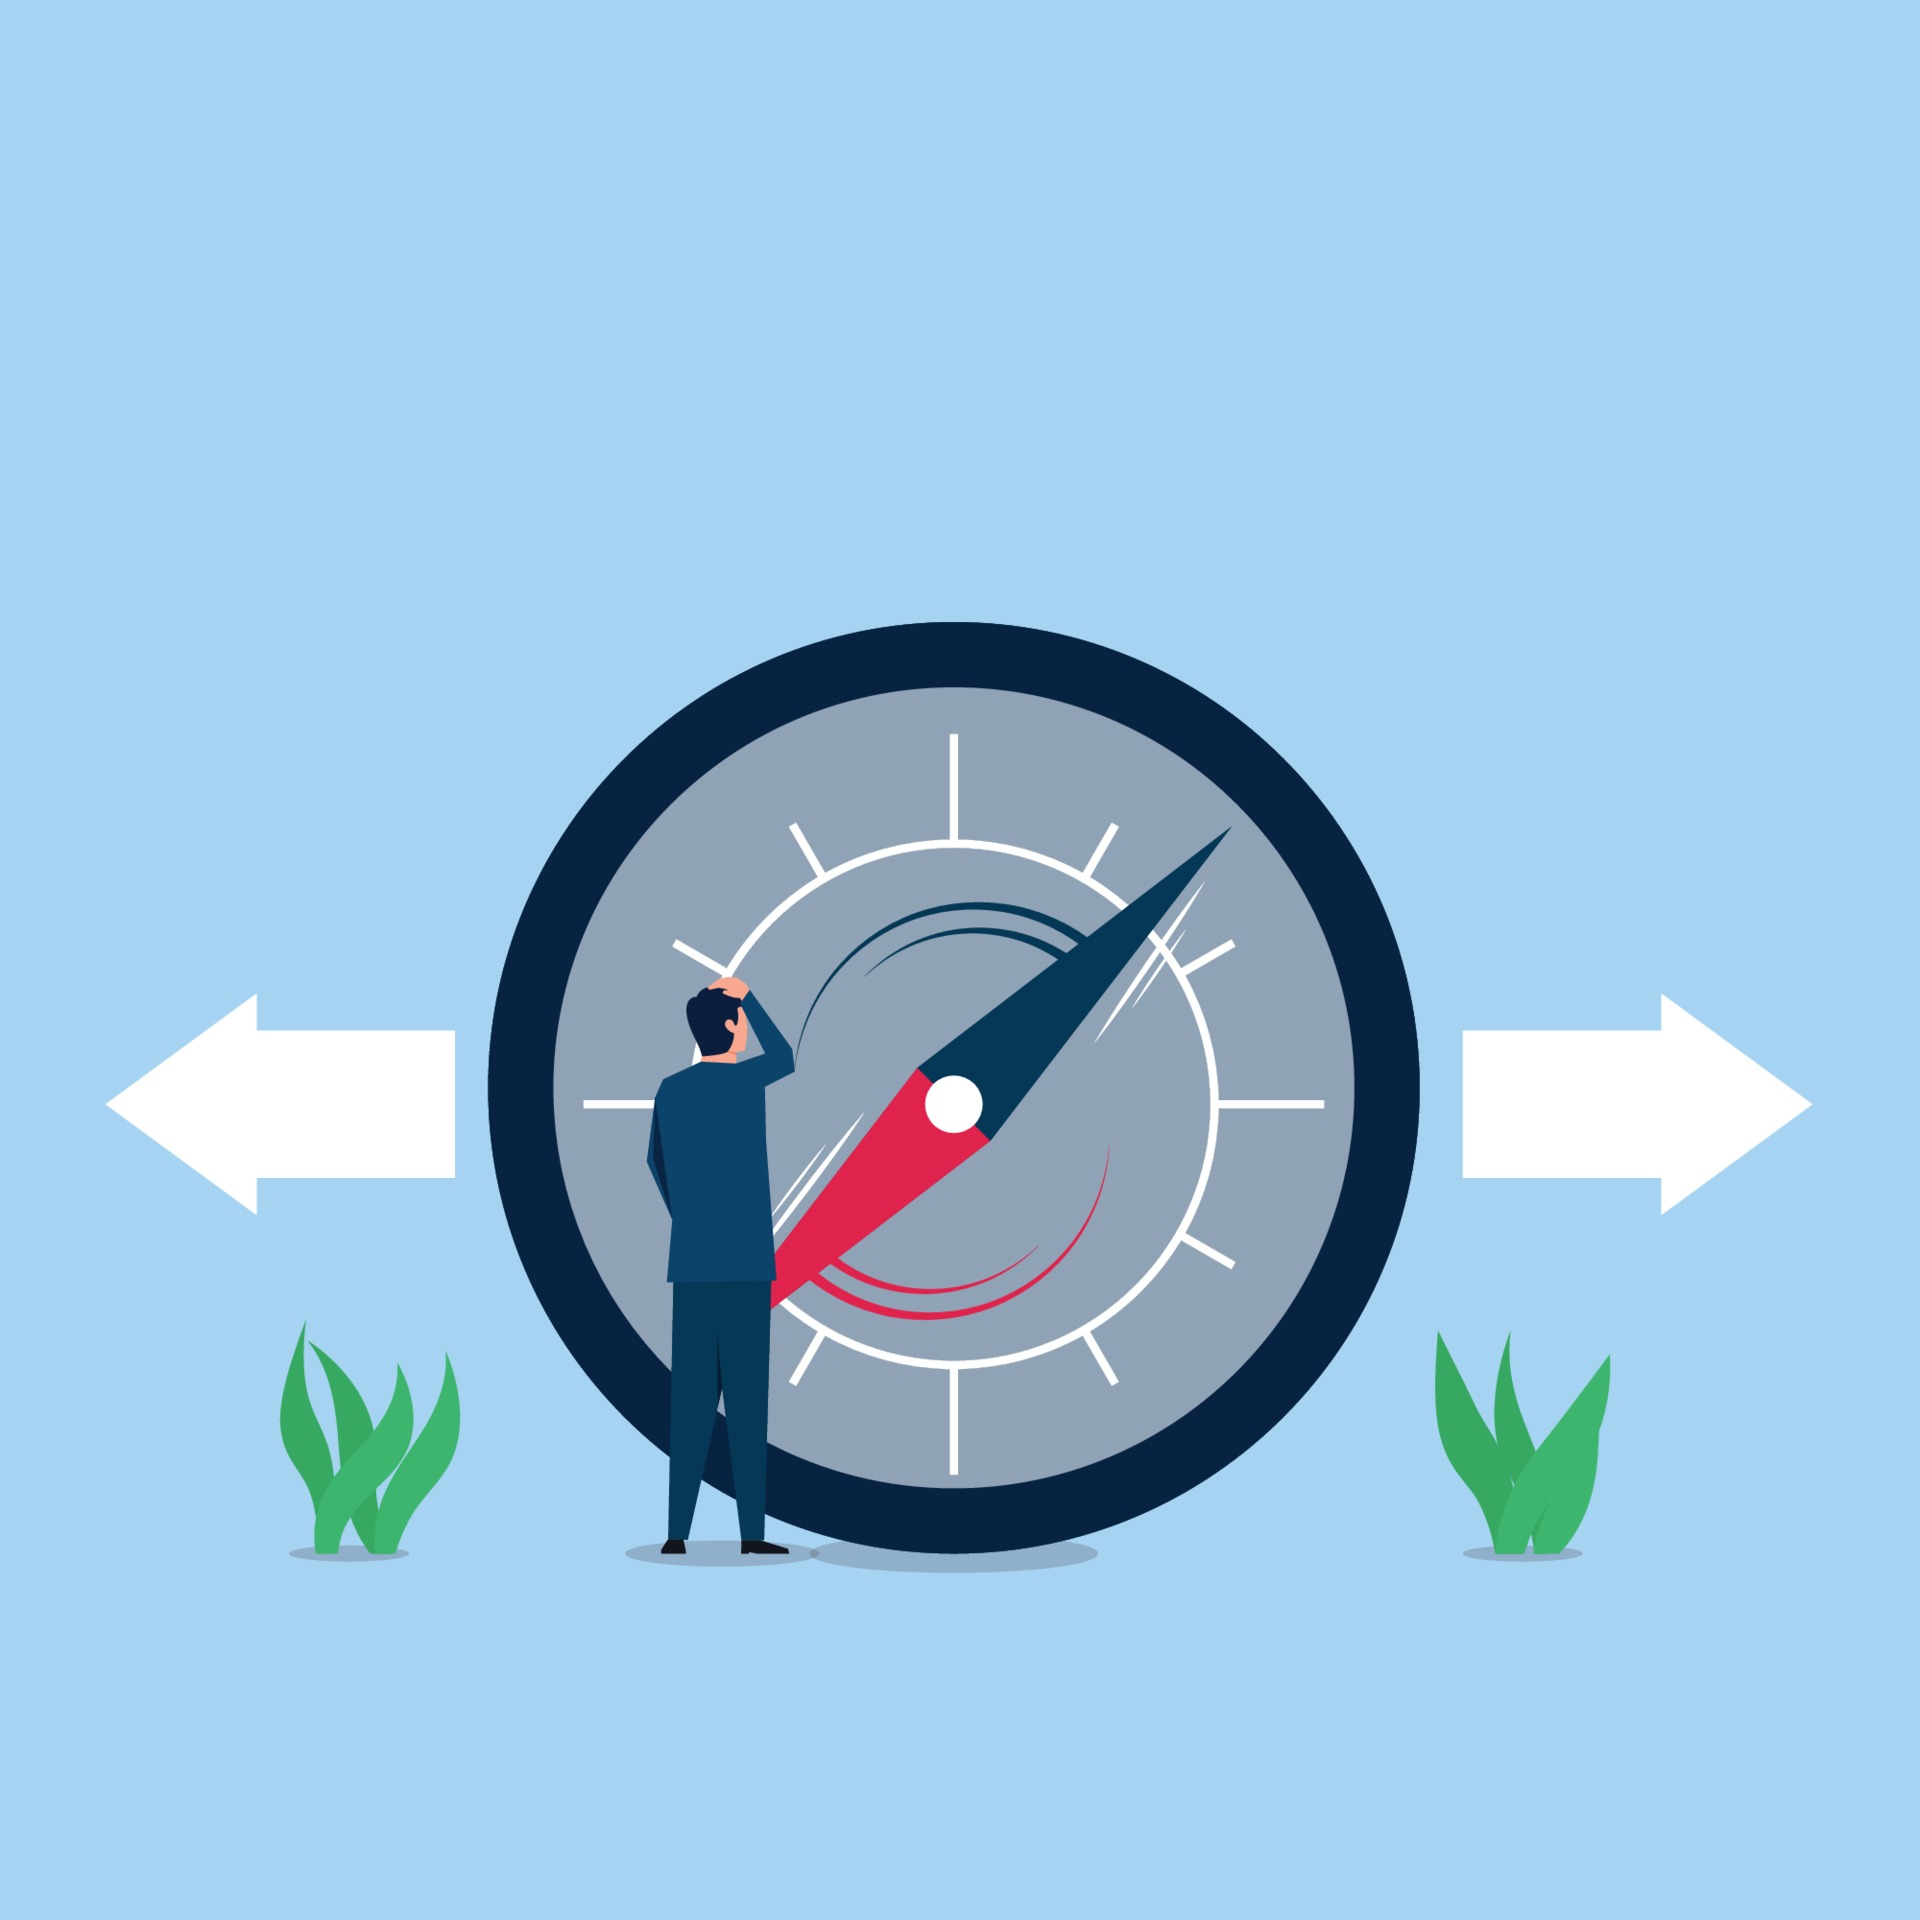 Business flat vector concept illustration. Businessman confused about compass  direction. 2130505 Vector Art at Vecteezy